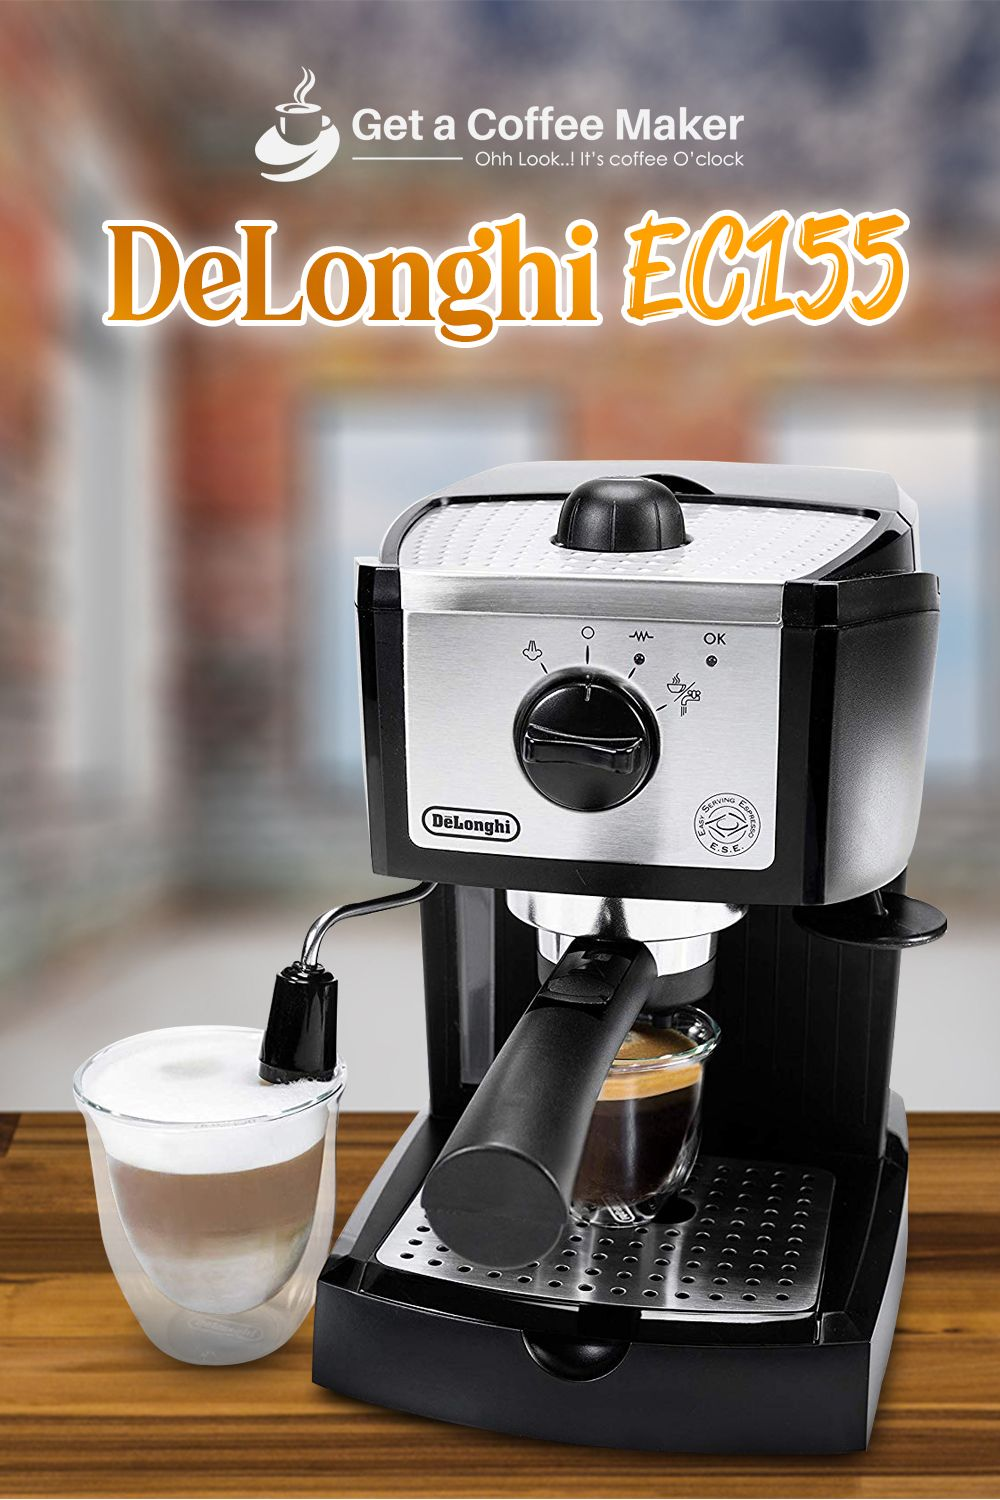 Top 10 Home Espresso Machines (Feb. 2020) - Reviews ...